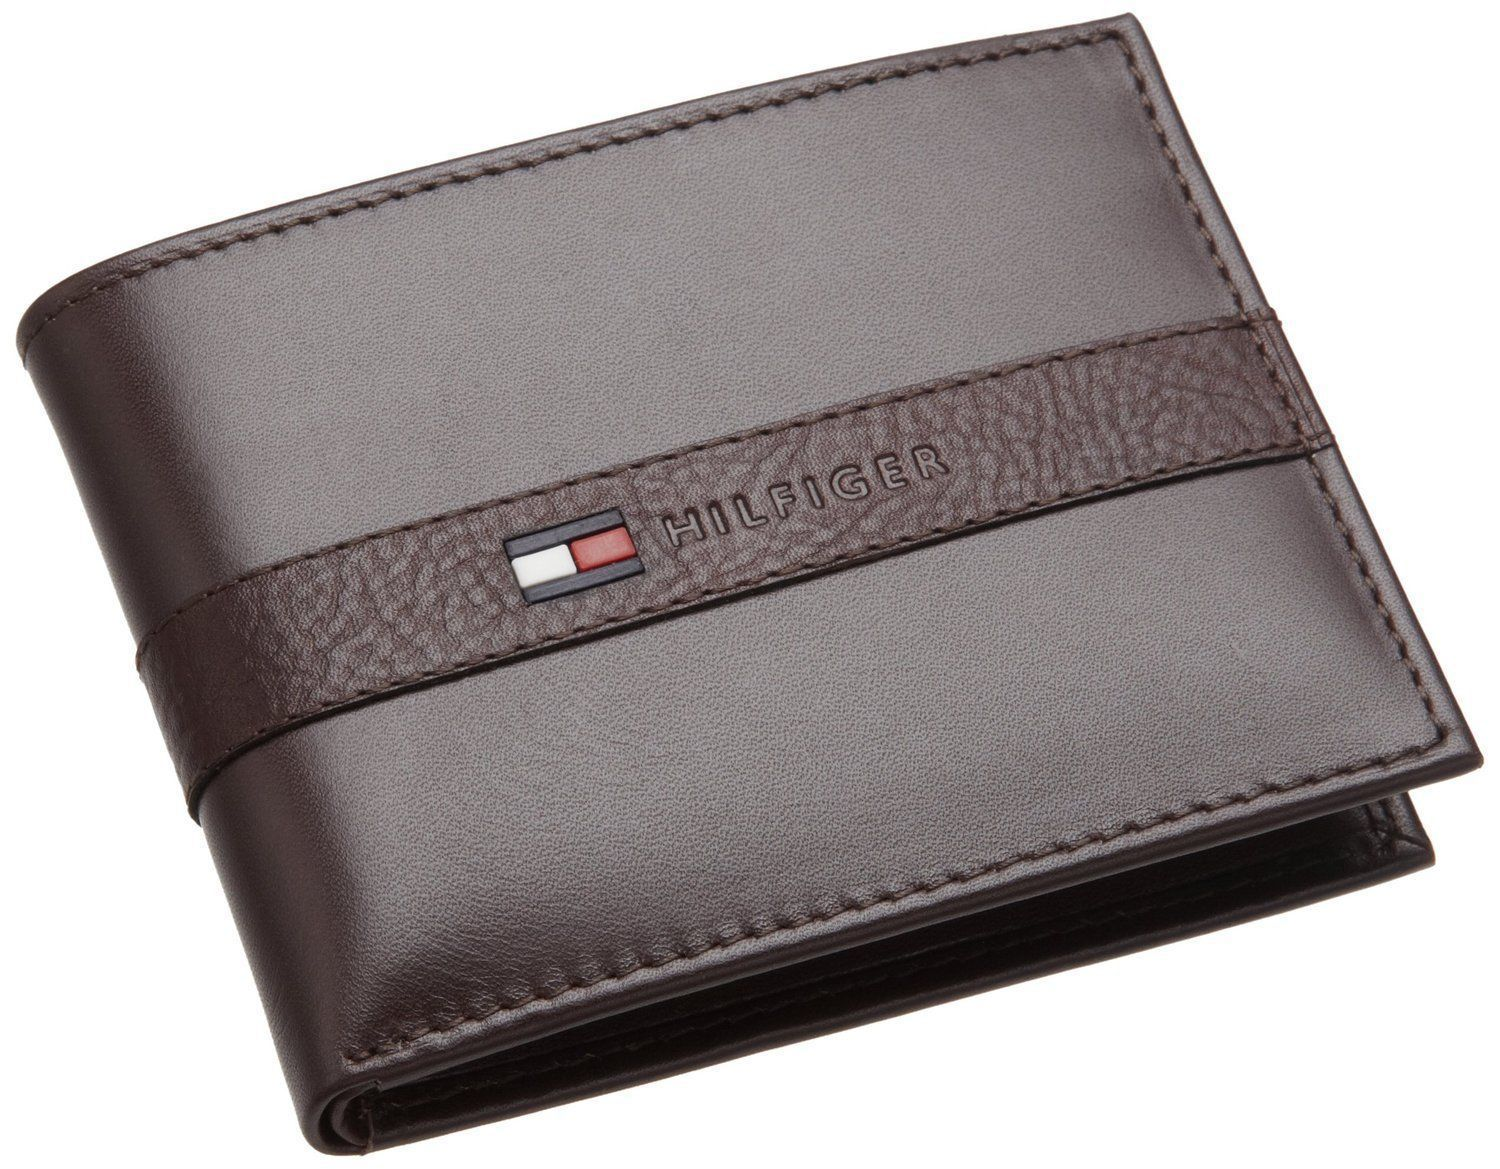 Tommy Hilfiger Men S Leather Bifold Credit Card Wallet Brown 31tl22x062 Leather Wallet Mens Leather Credit Card Wallet Tommy Hilfiger Wallet